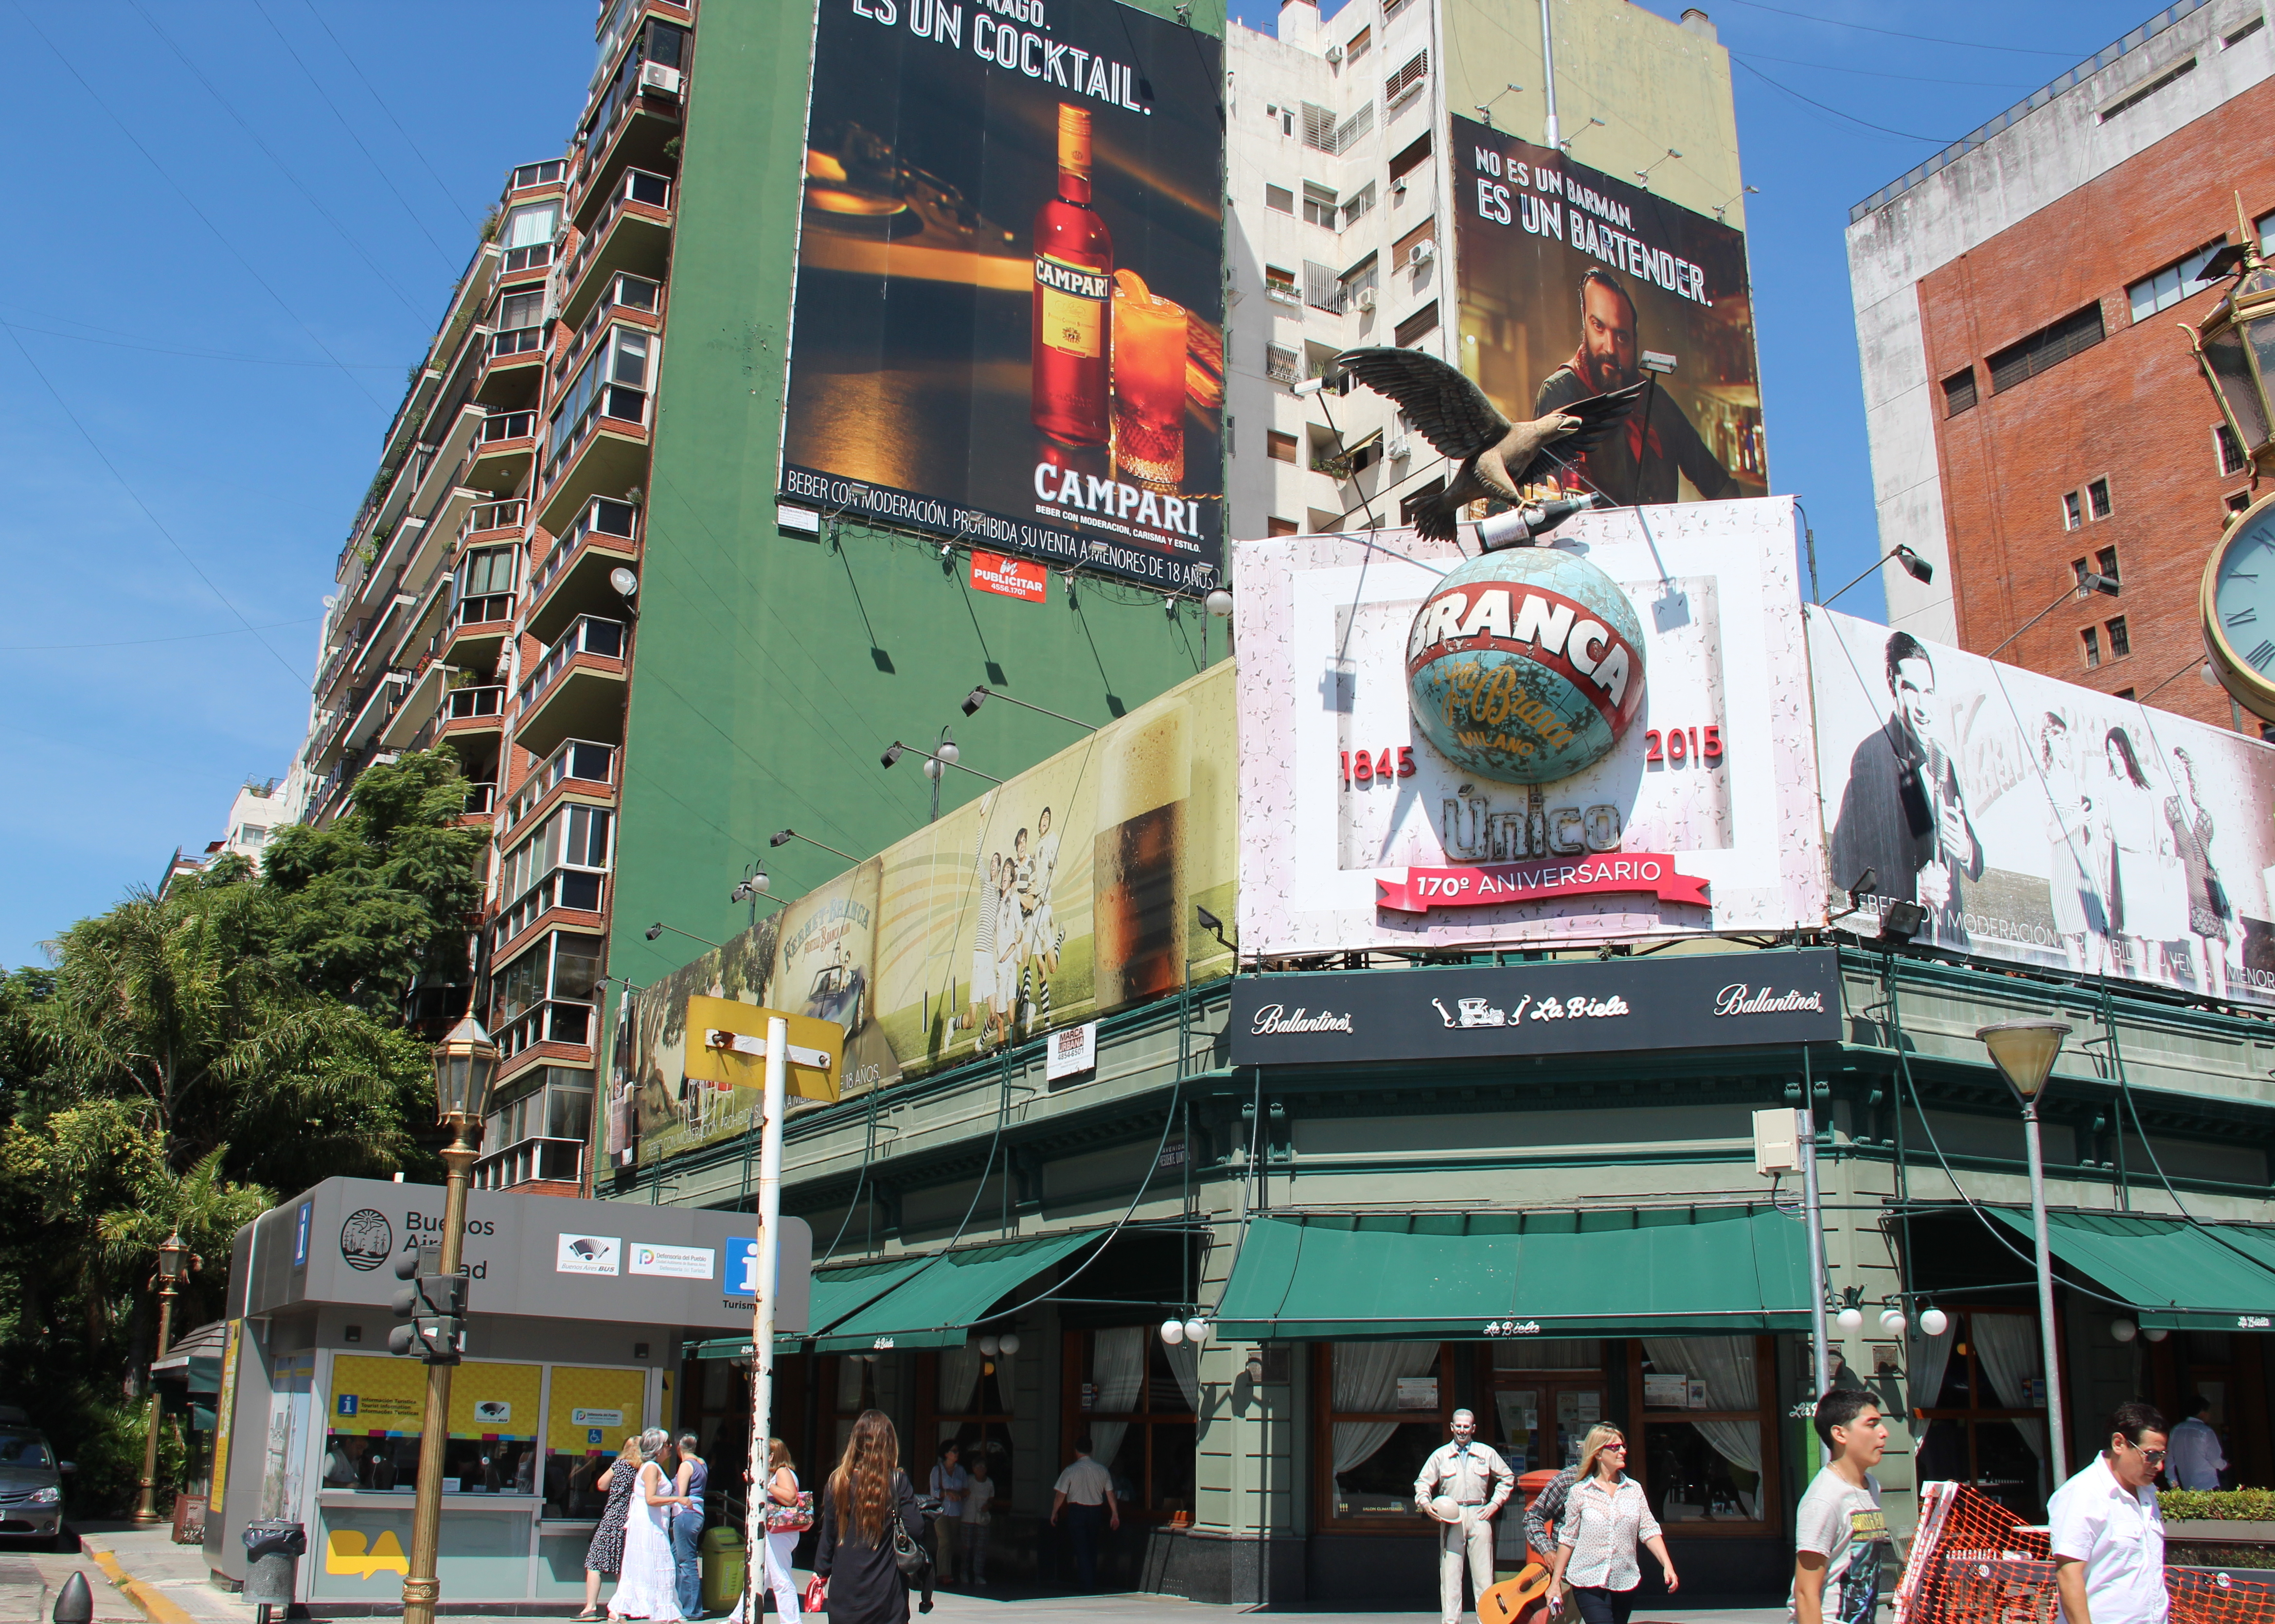 The Fernet Branca logo above a cafe in Buenos Aires with an advertisement for Campari, a new rival, behind.